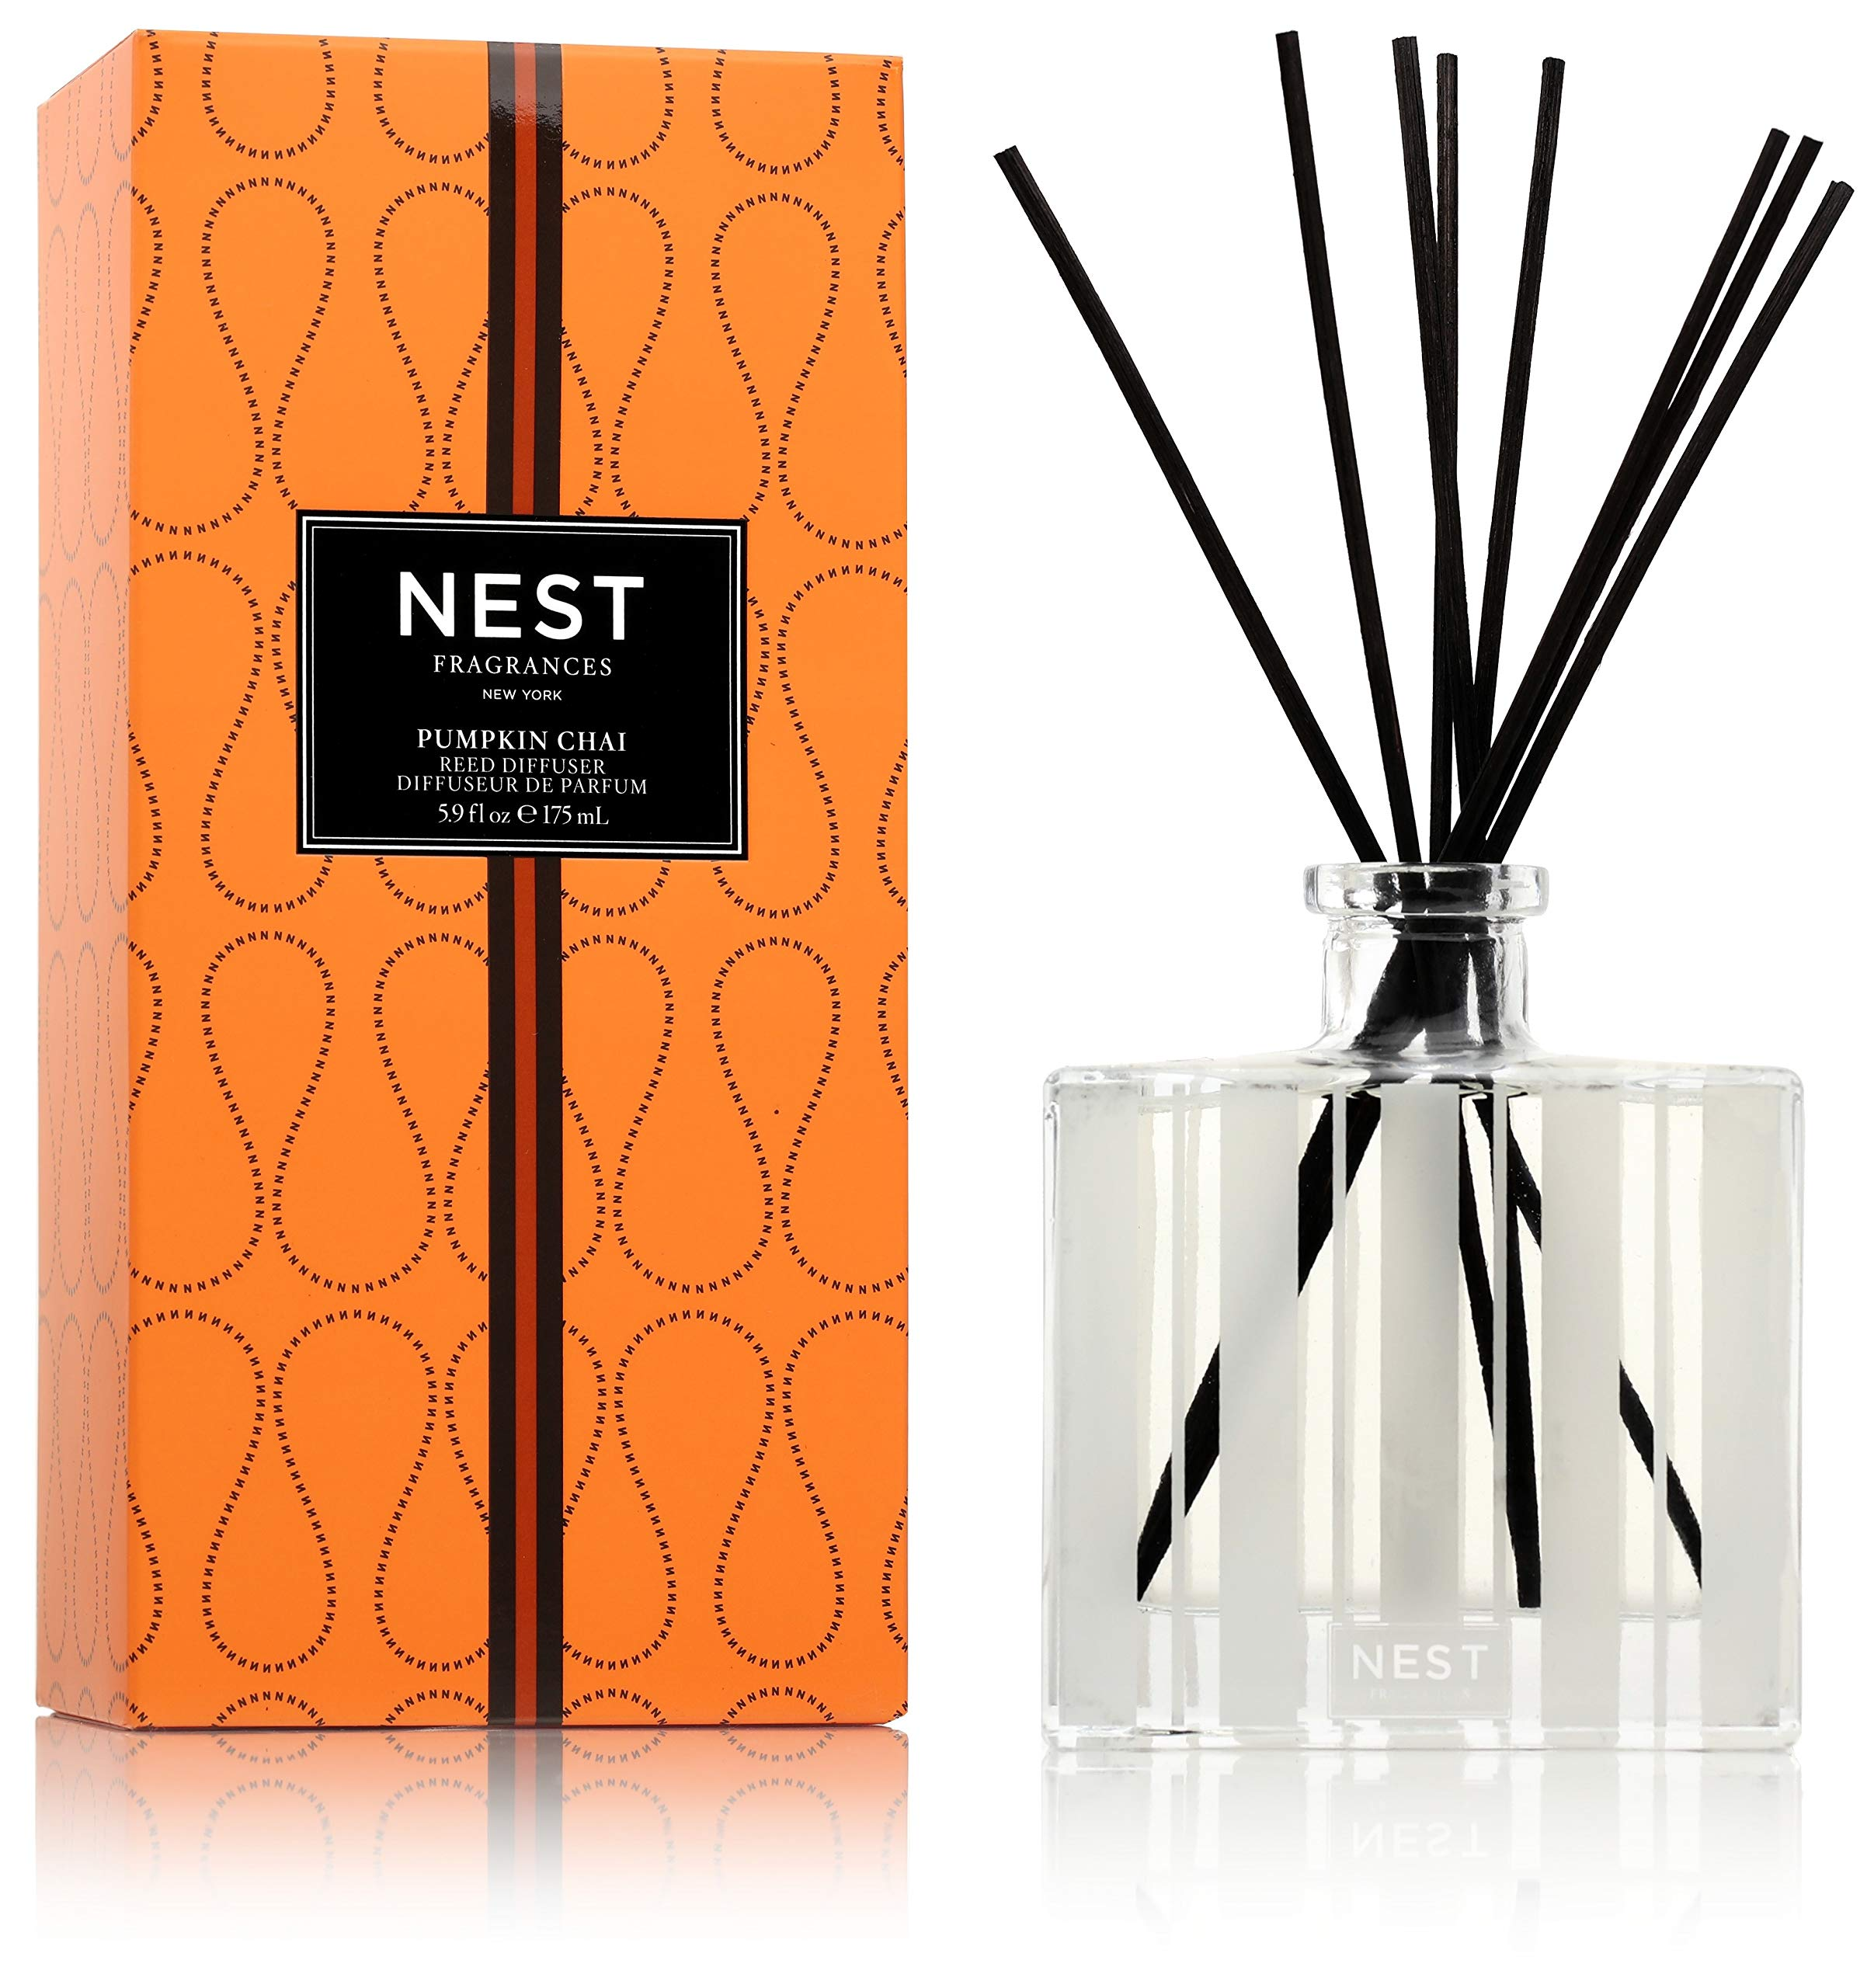 NEST Fragrances Reed Diffuser- Pumpkin Chai, 5.9 fl oz